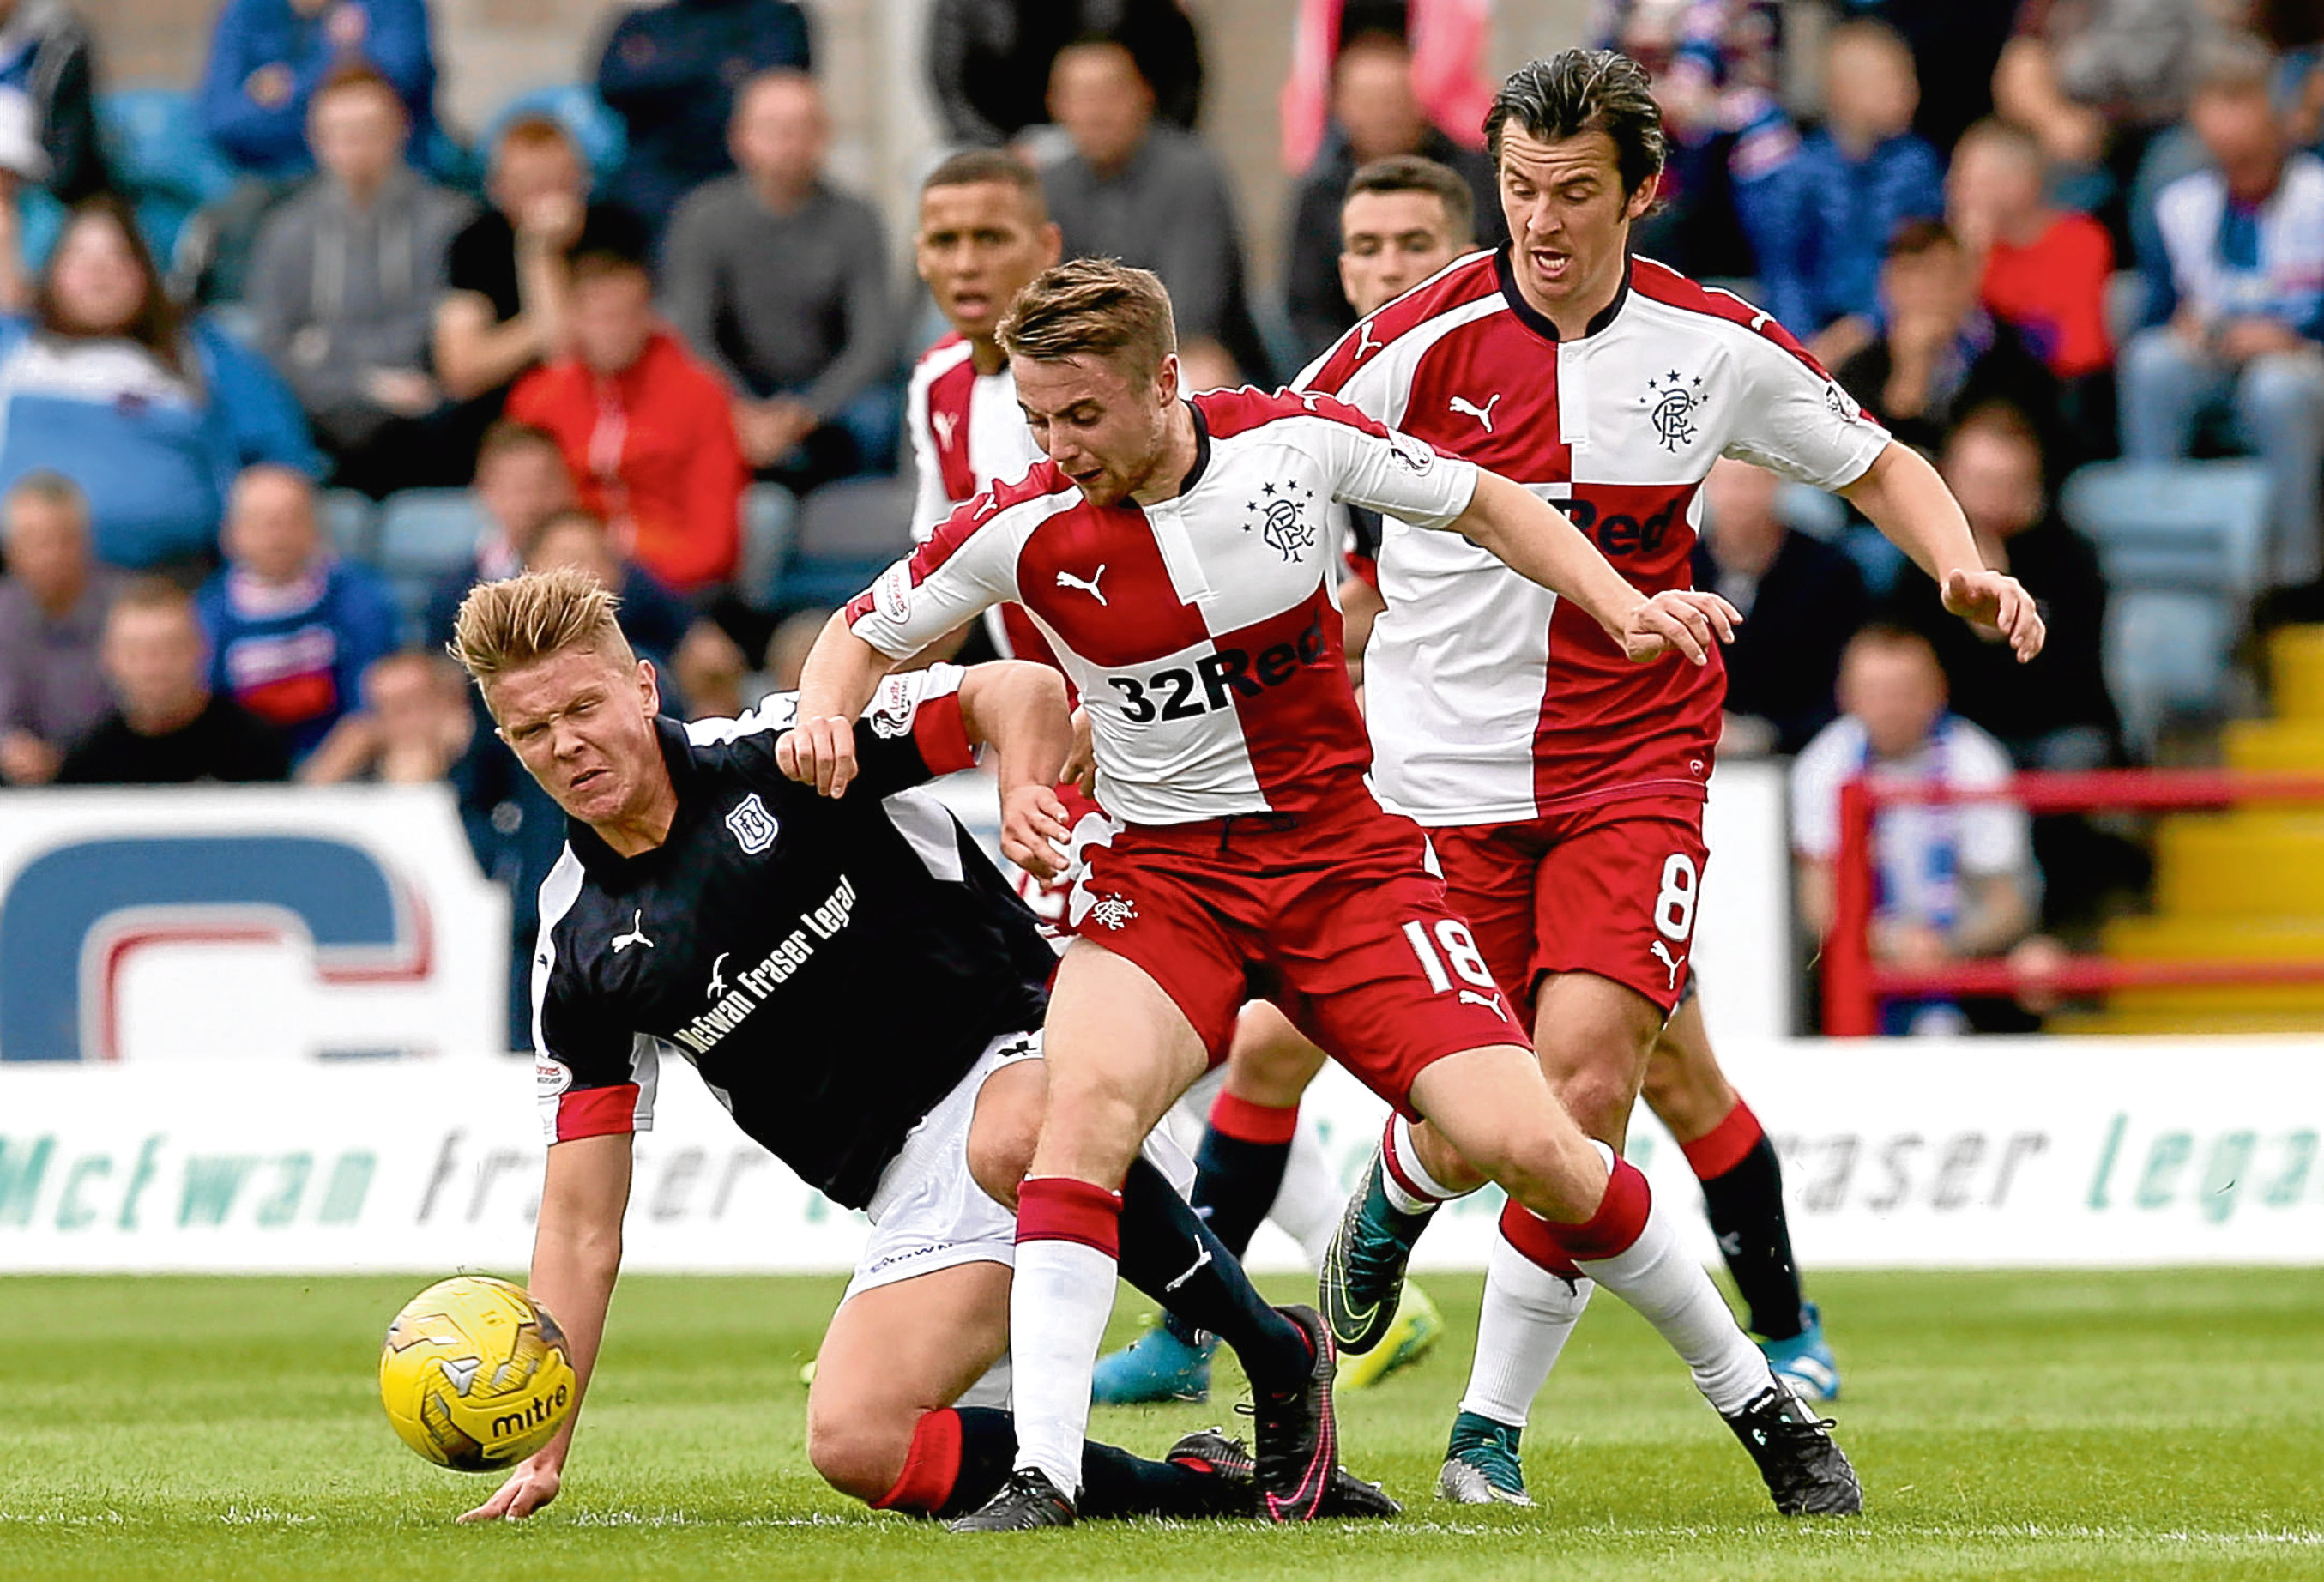 Mark O'Hara battles for the ball during the visit of Rangers in the Ladbrokes Premiership match at Dens Park on Saturday. Picture by David Young